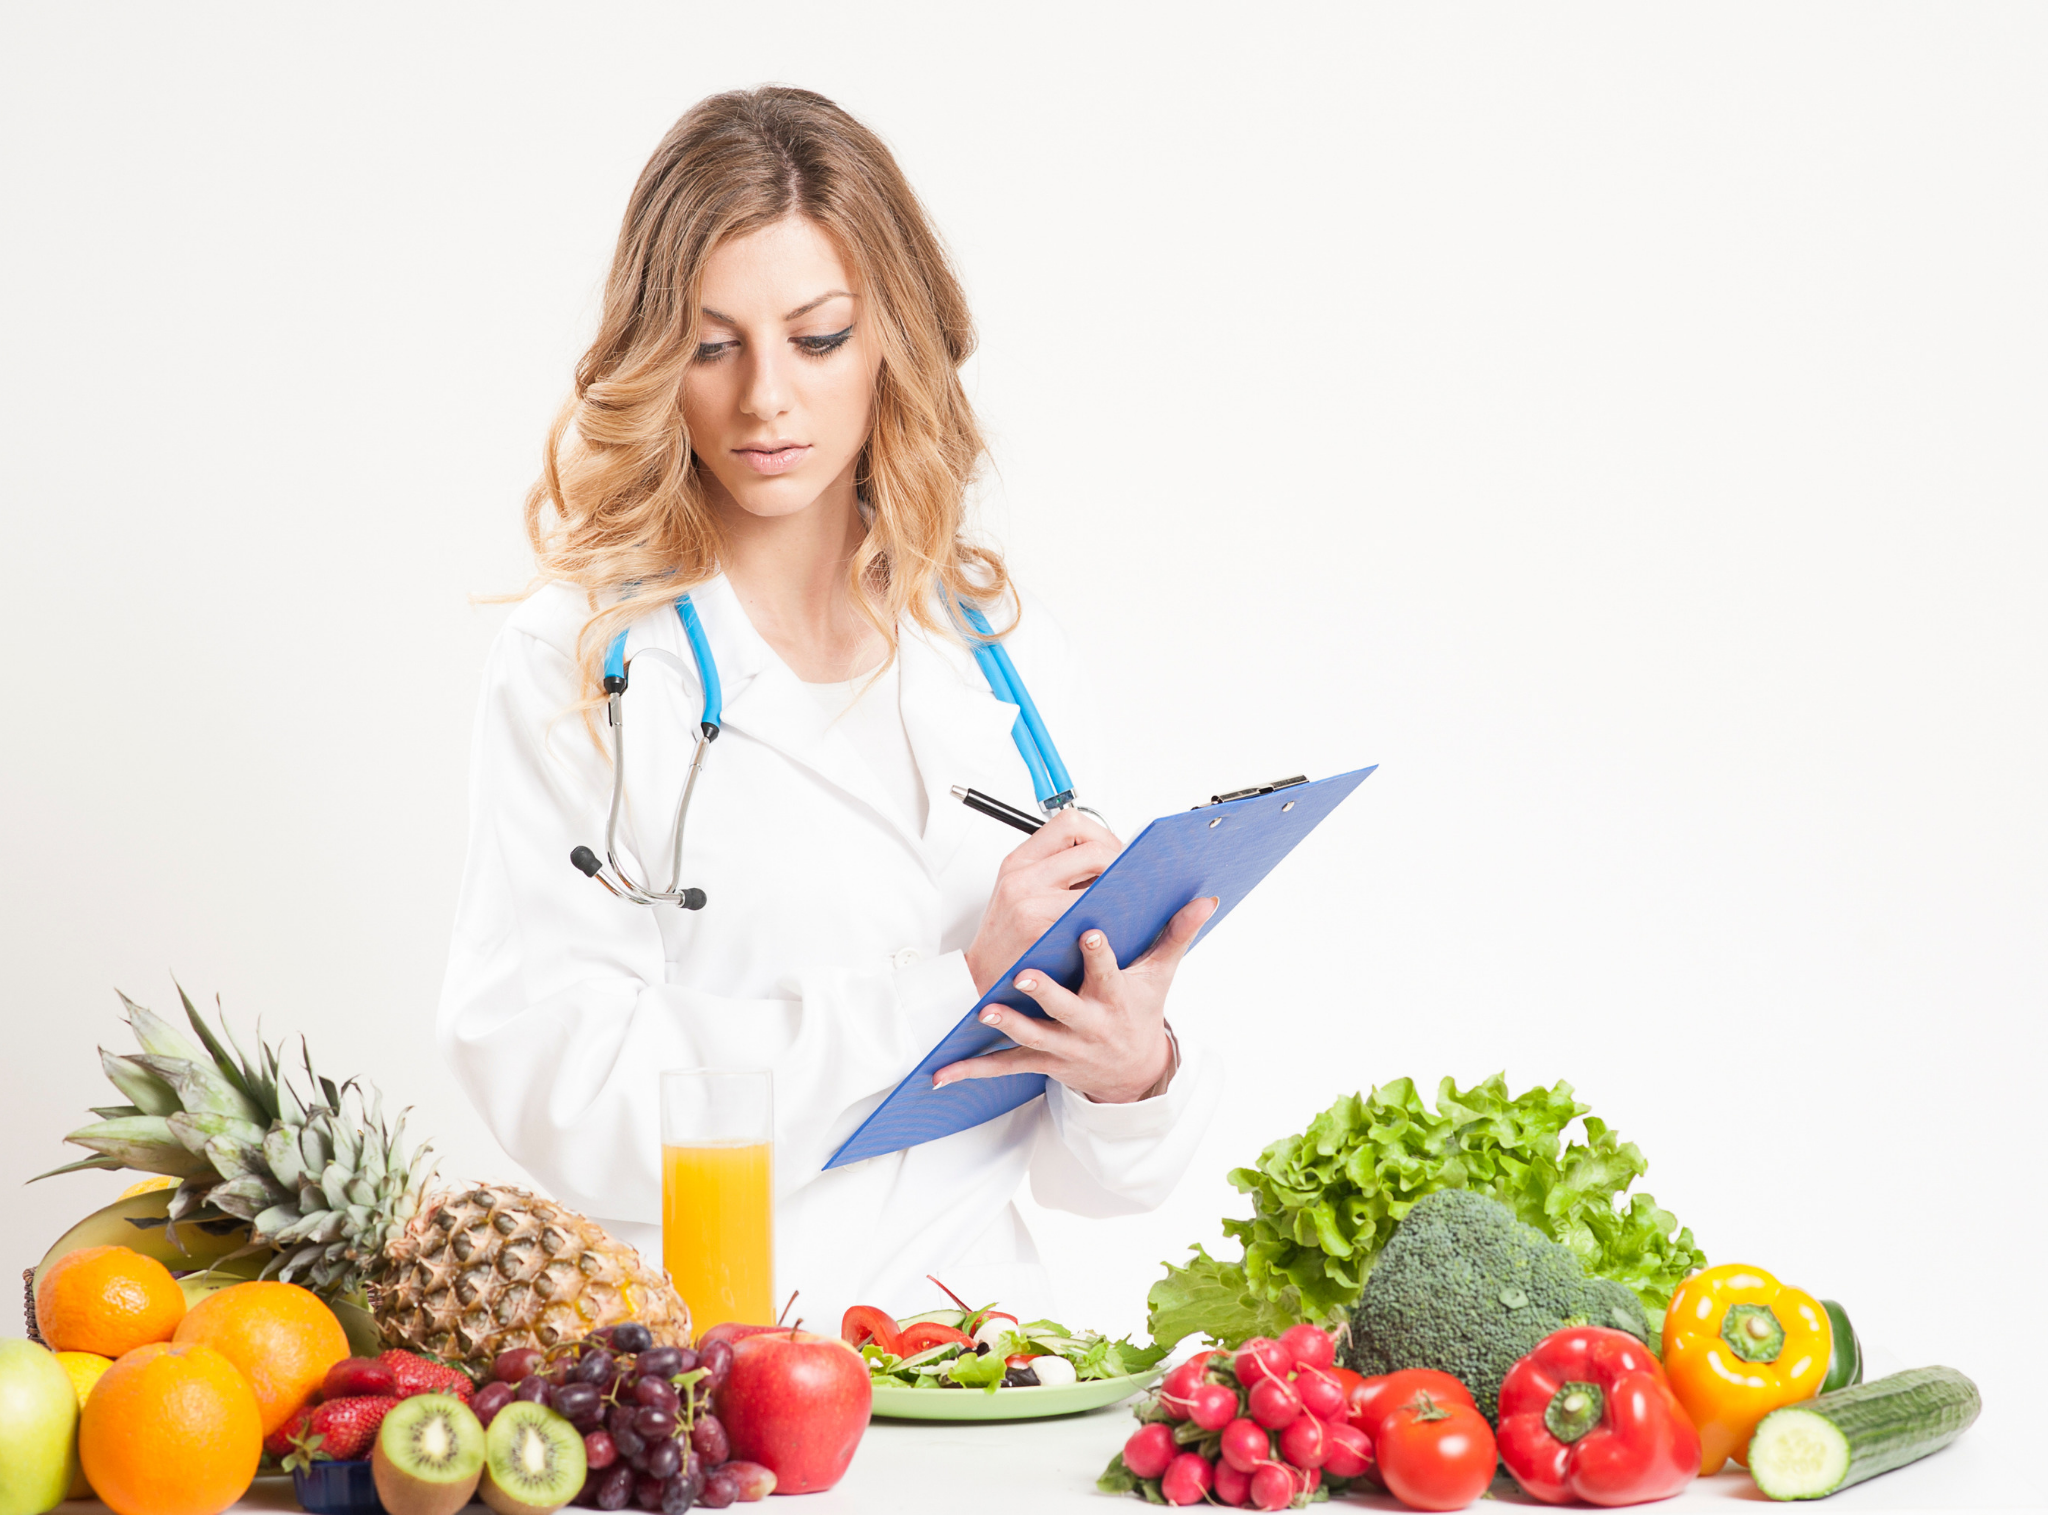 Dietetic Consultation Can Help Manage Cardiovascular Disease